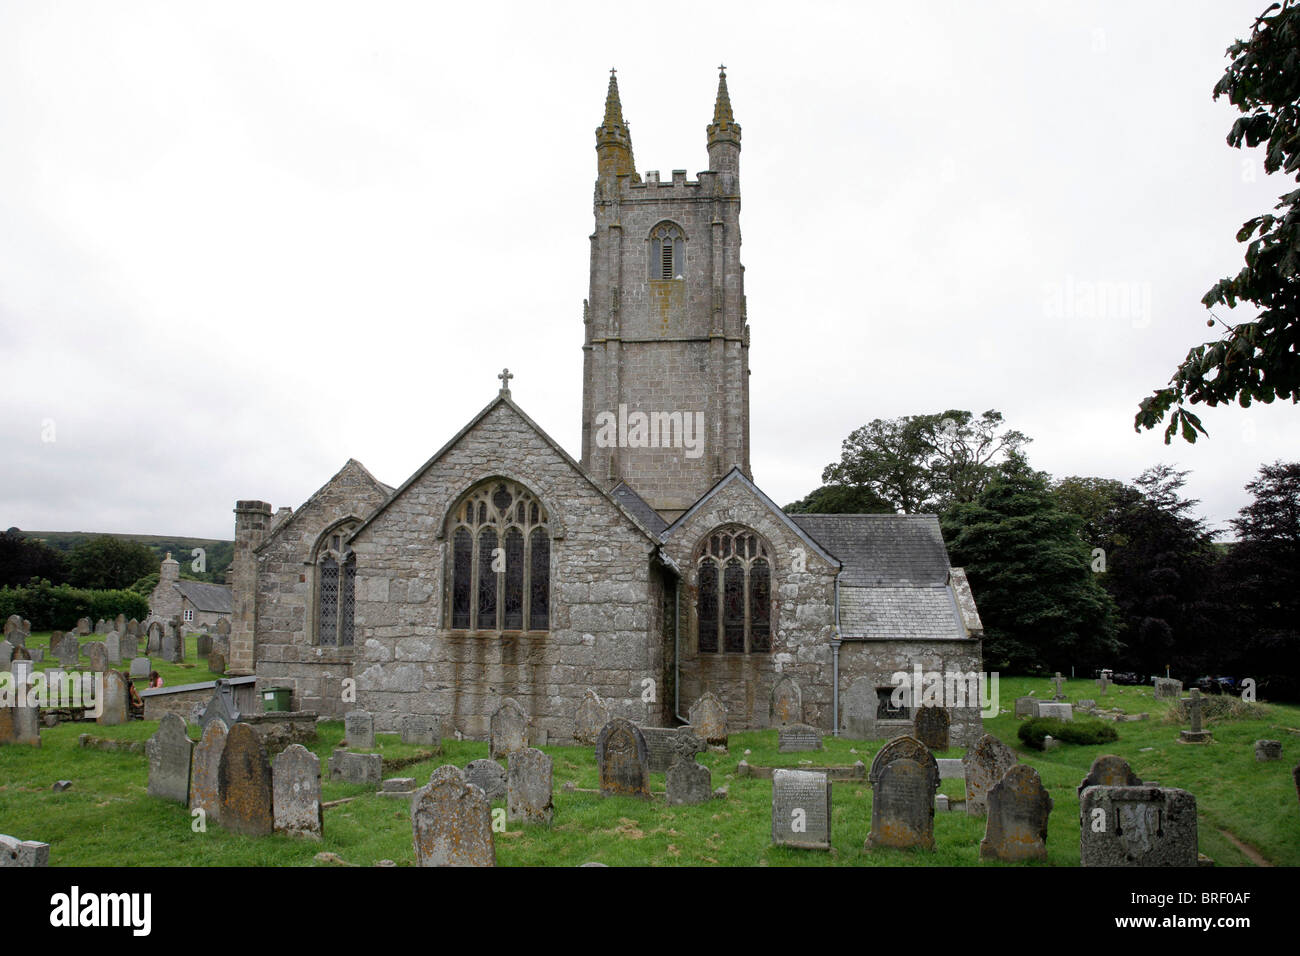 St. Pancras Church, Widecombe-in-the-Moor, Devon, Dartmoor, South England, Great Britain, Europe - Stock Image